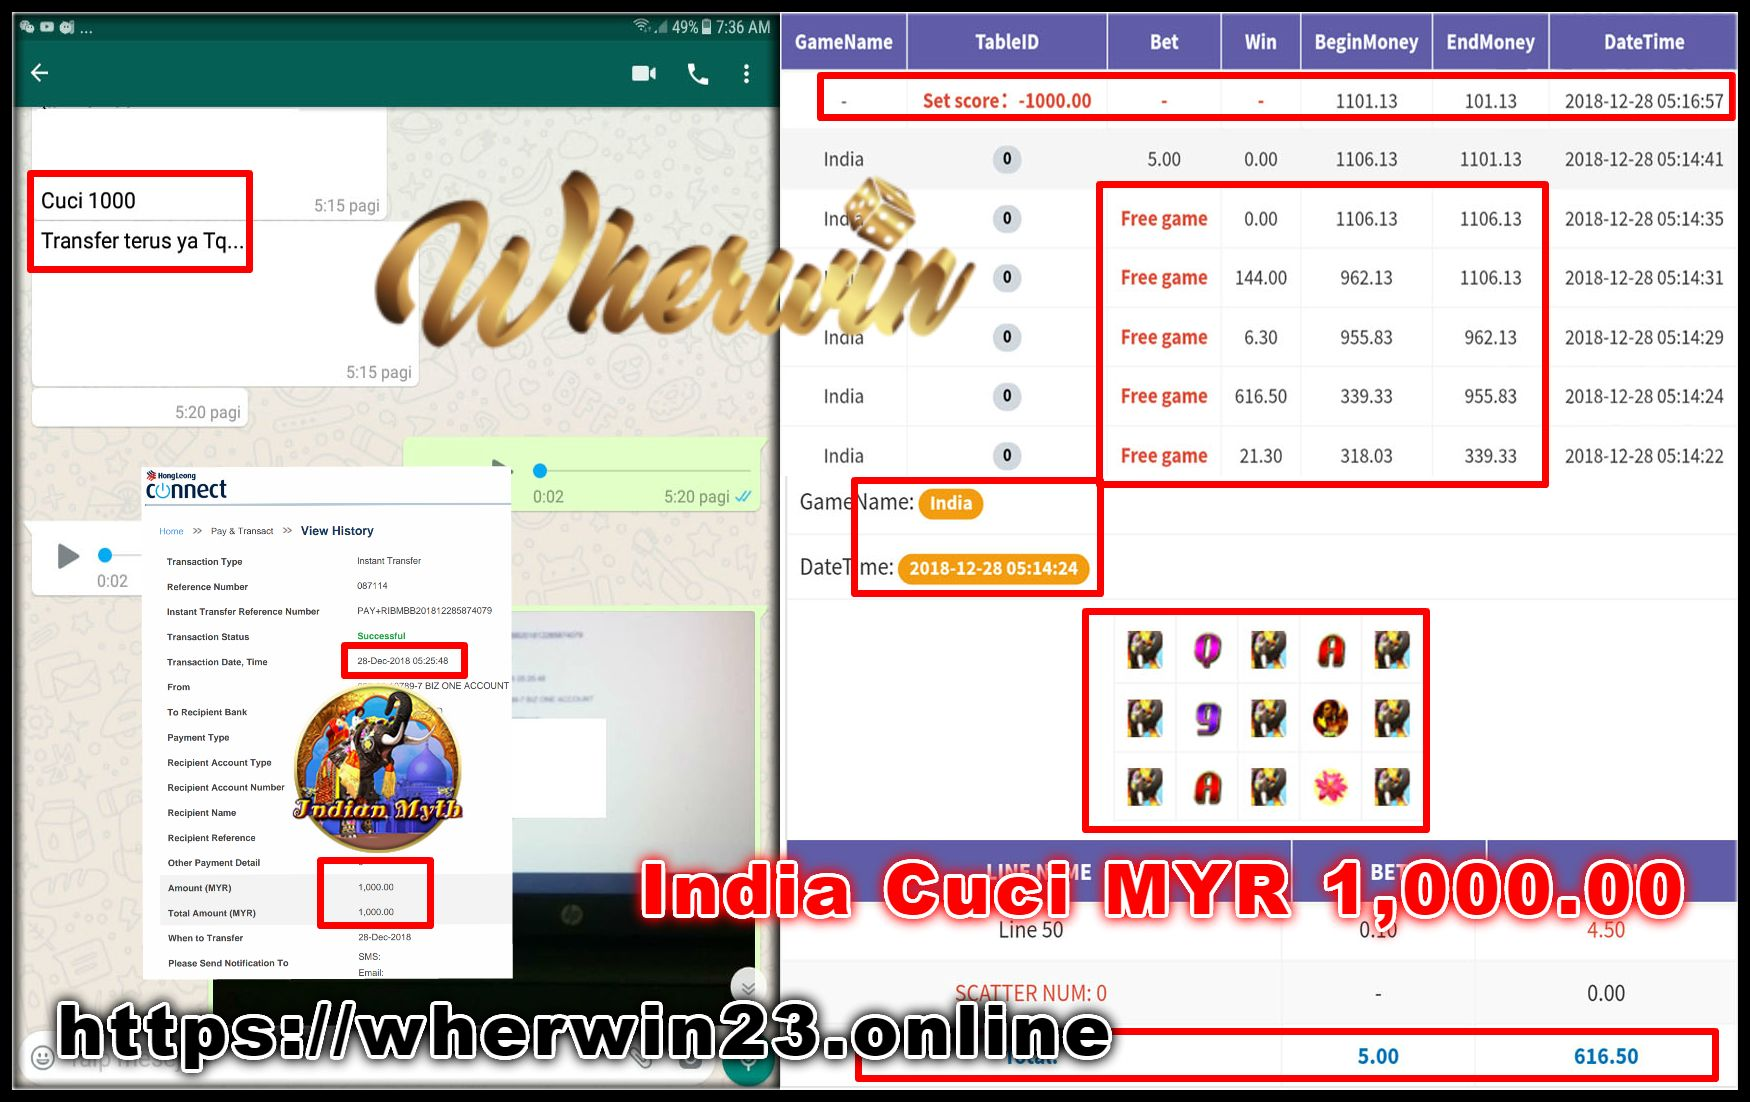 Wherwin23 is 1 online Casino site in Malaysia and offers